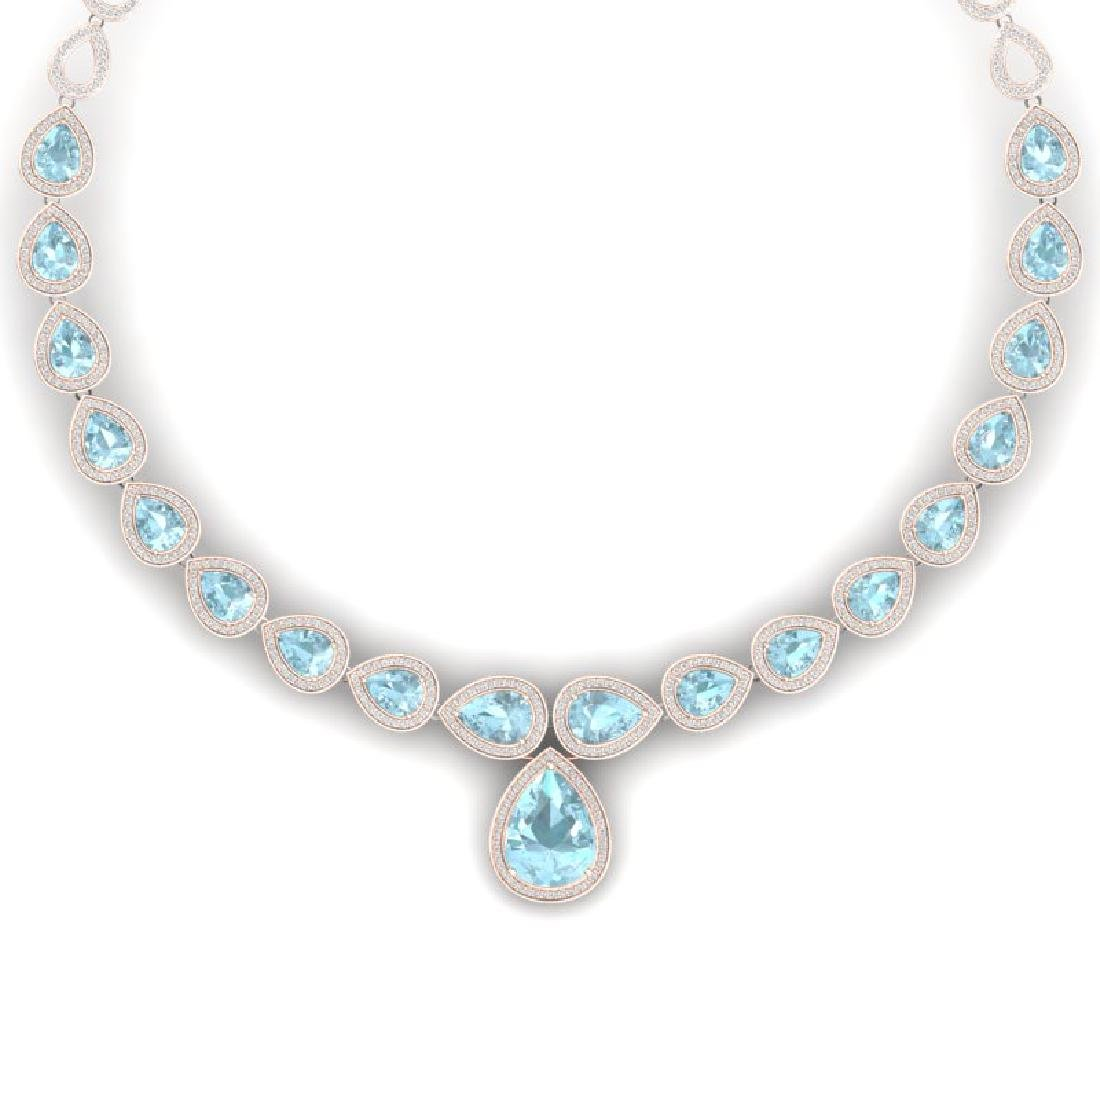 54 CTW Royalty Sky Topaz & VS Diamond Necklace 18K Rose